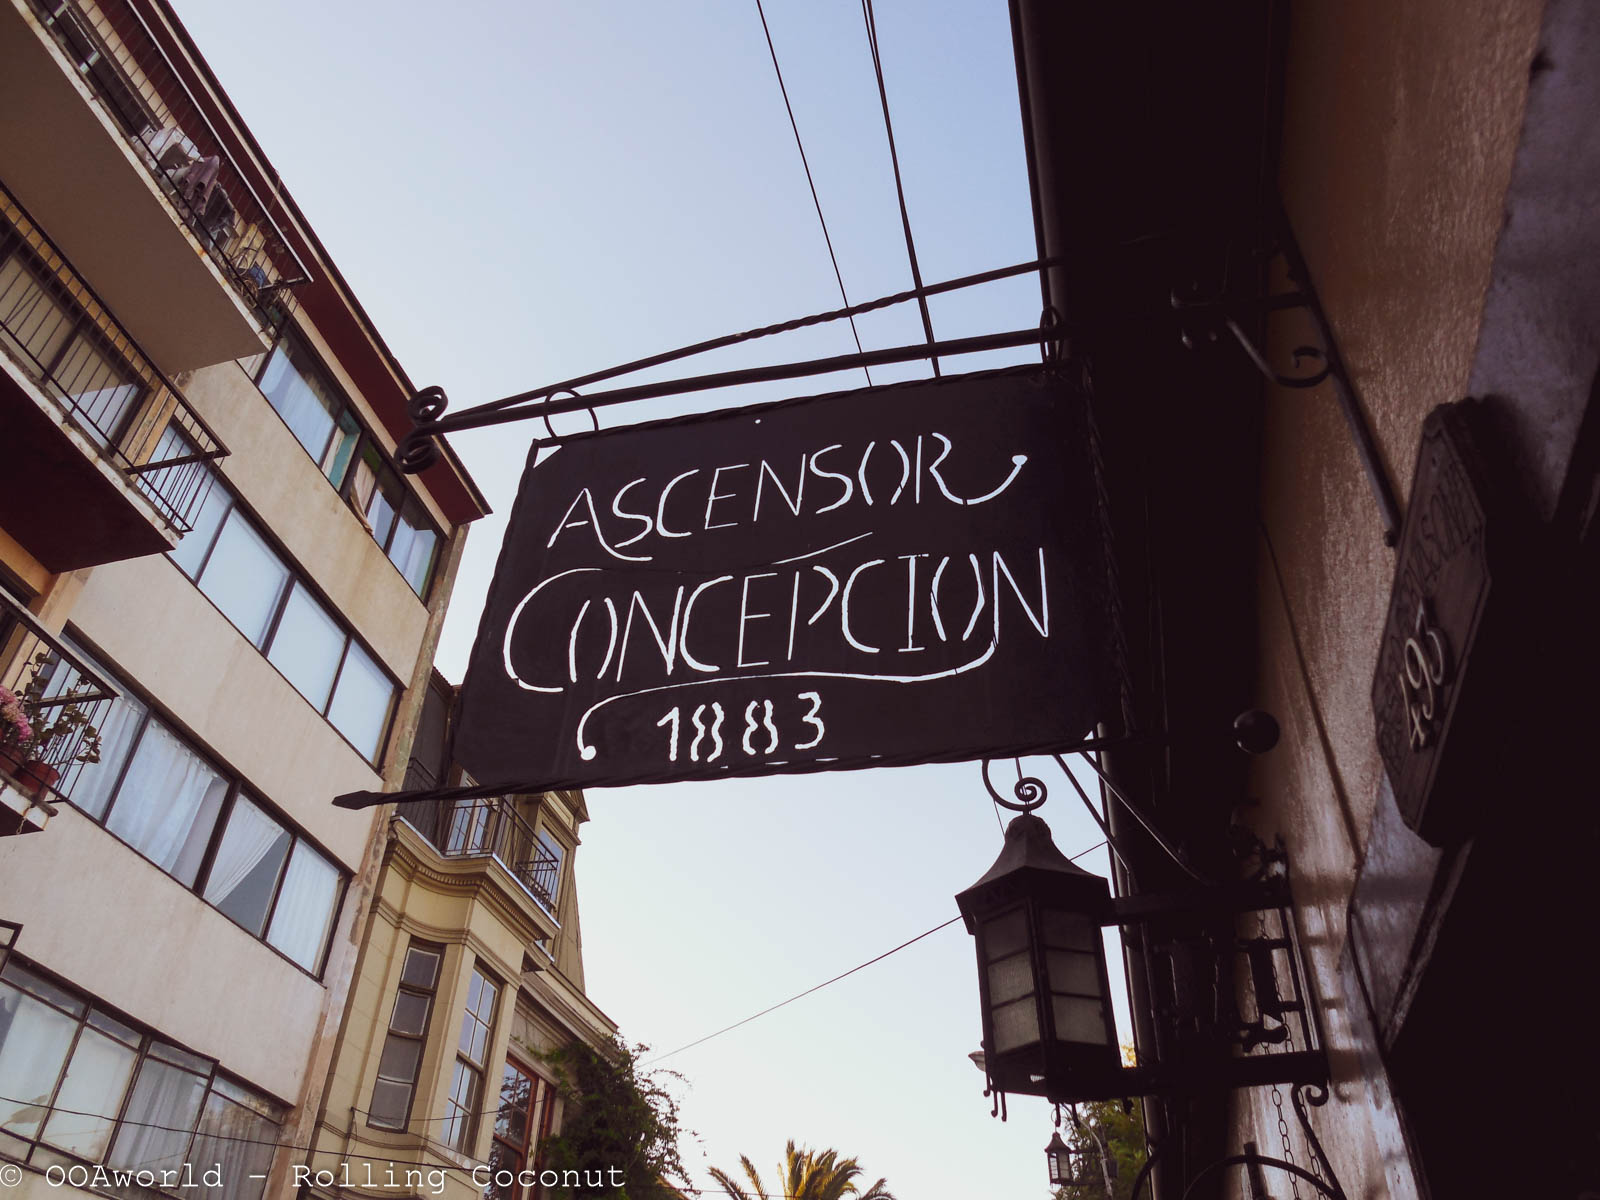 Ascensor Concepcion Station Valparaiso Chile - Photo Ooaworld Rolling Coconut